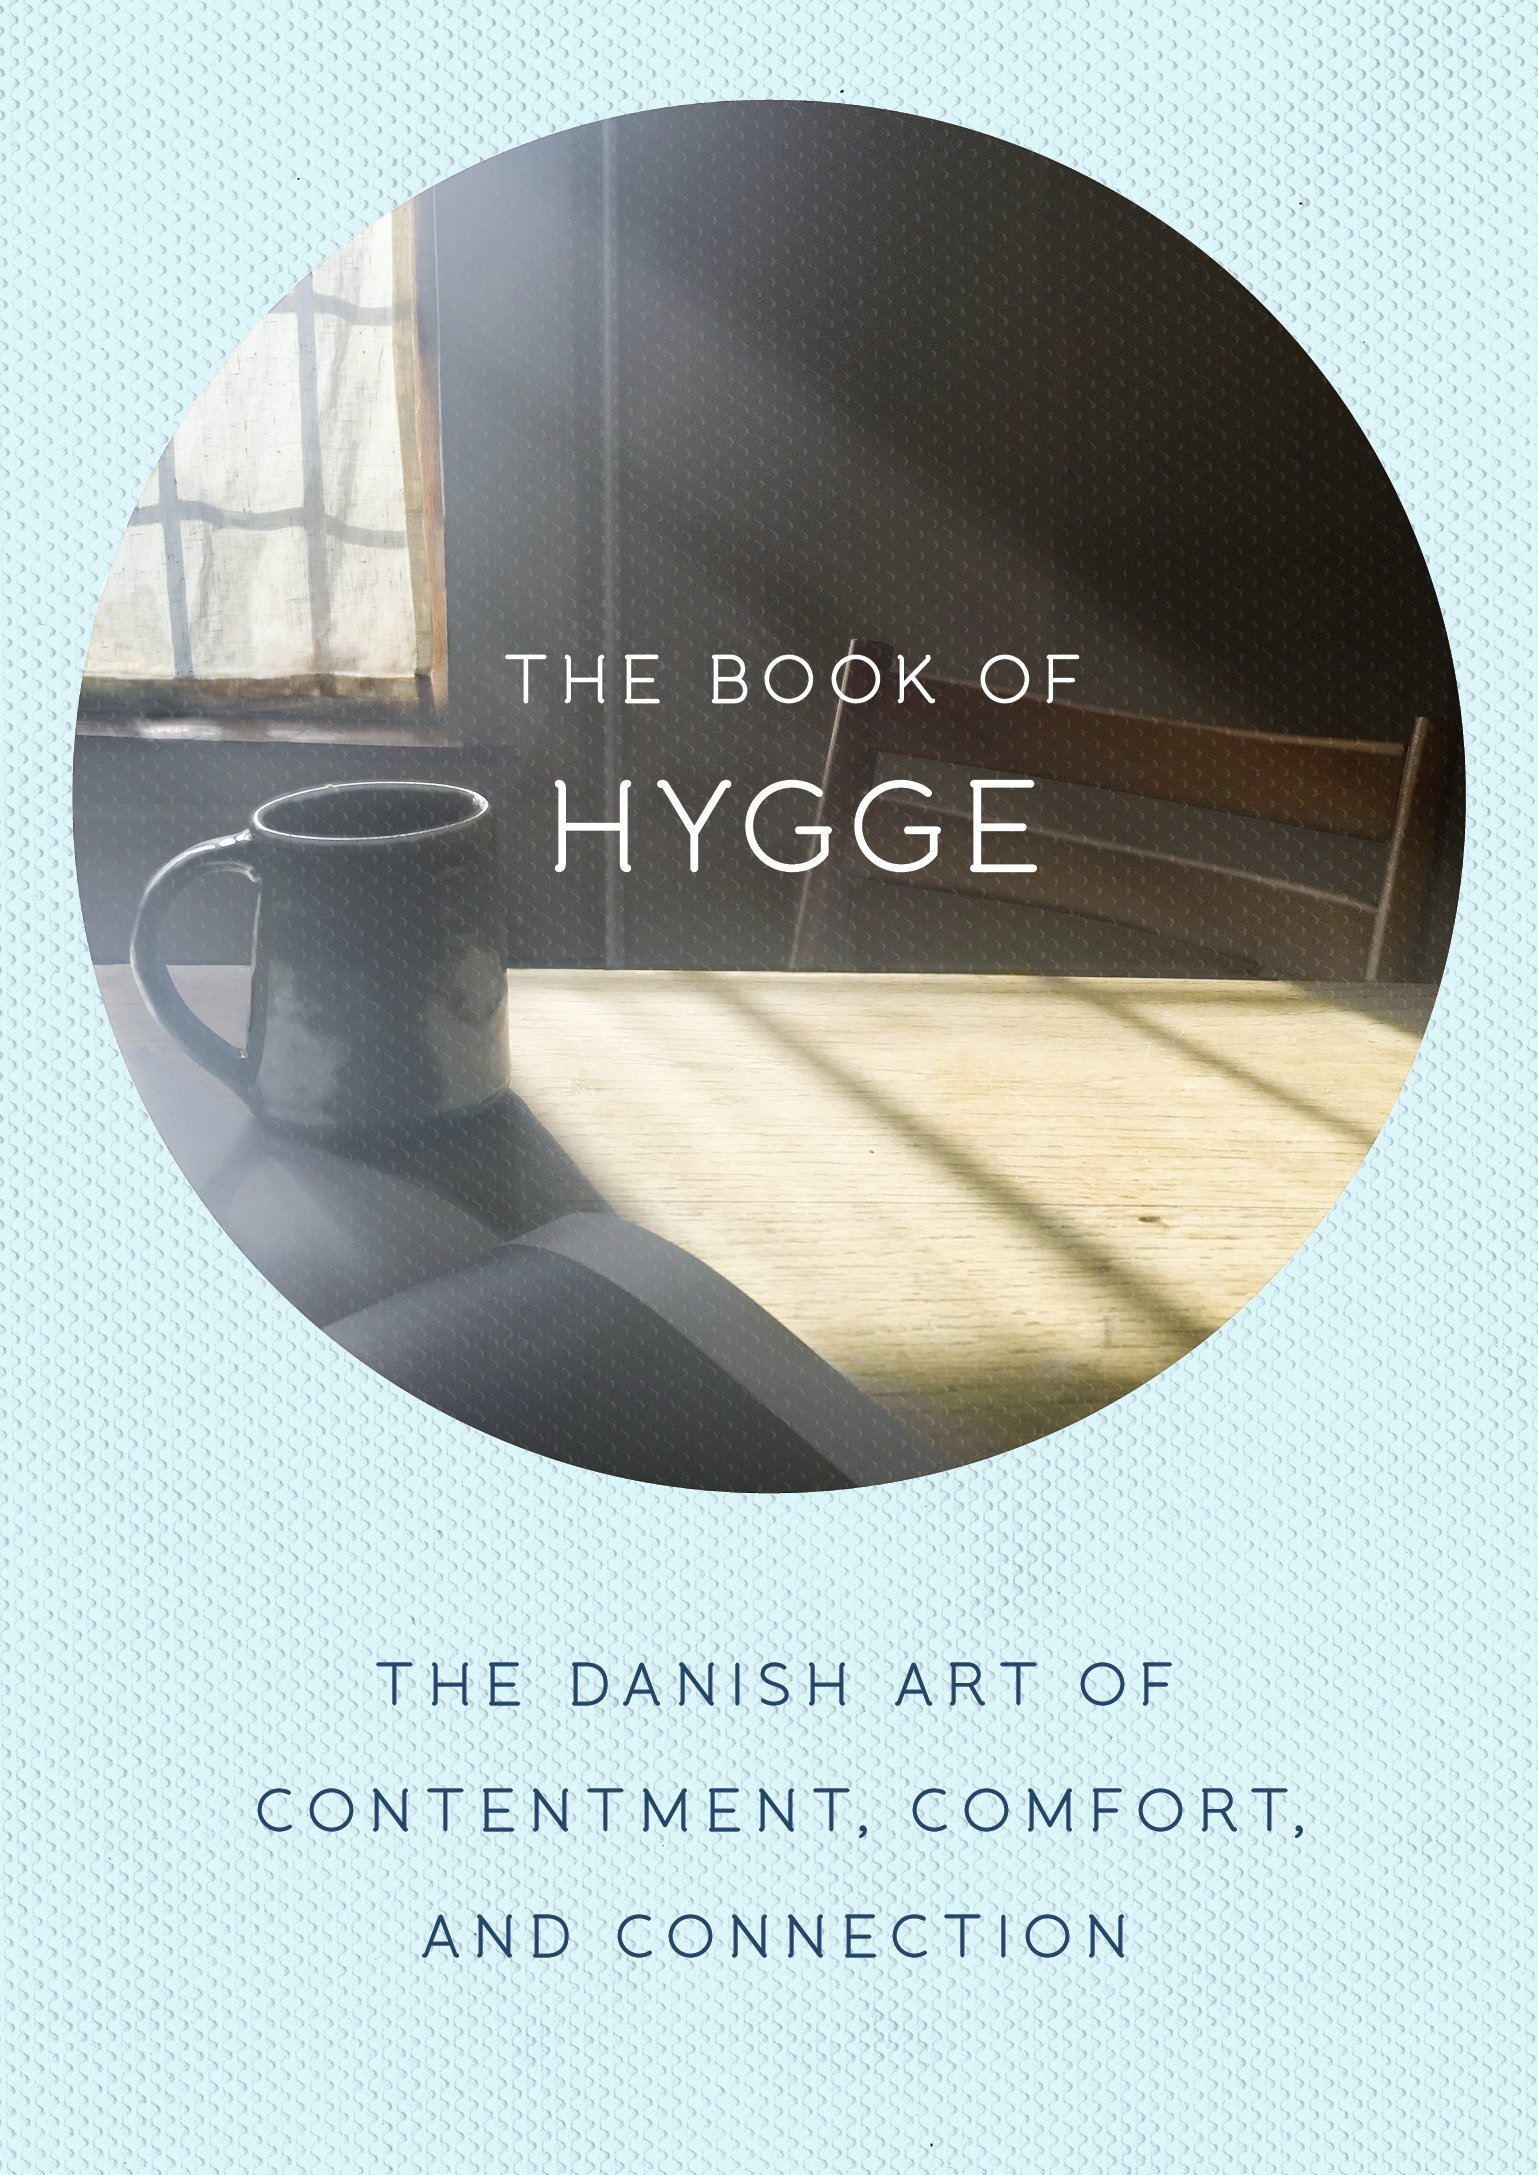 Book Hygge Contentment Comfort Connection product image